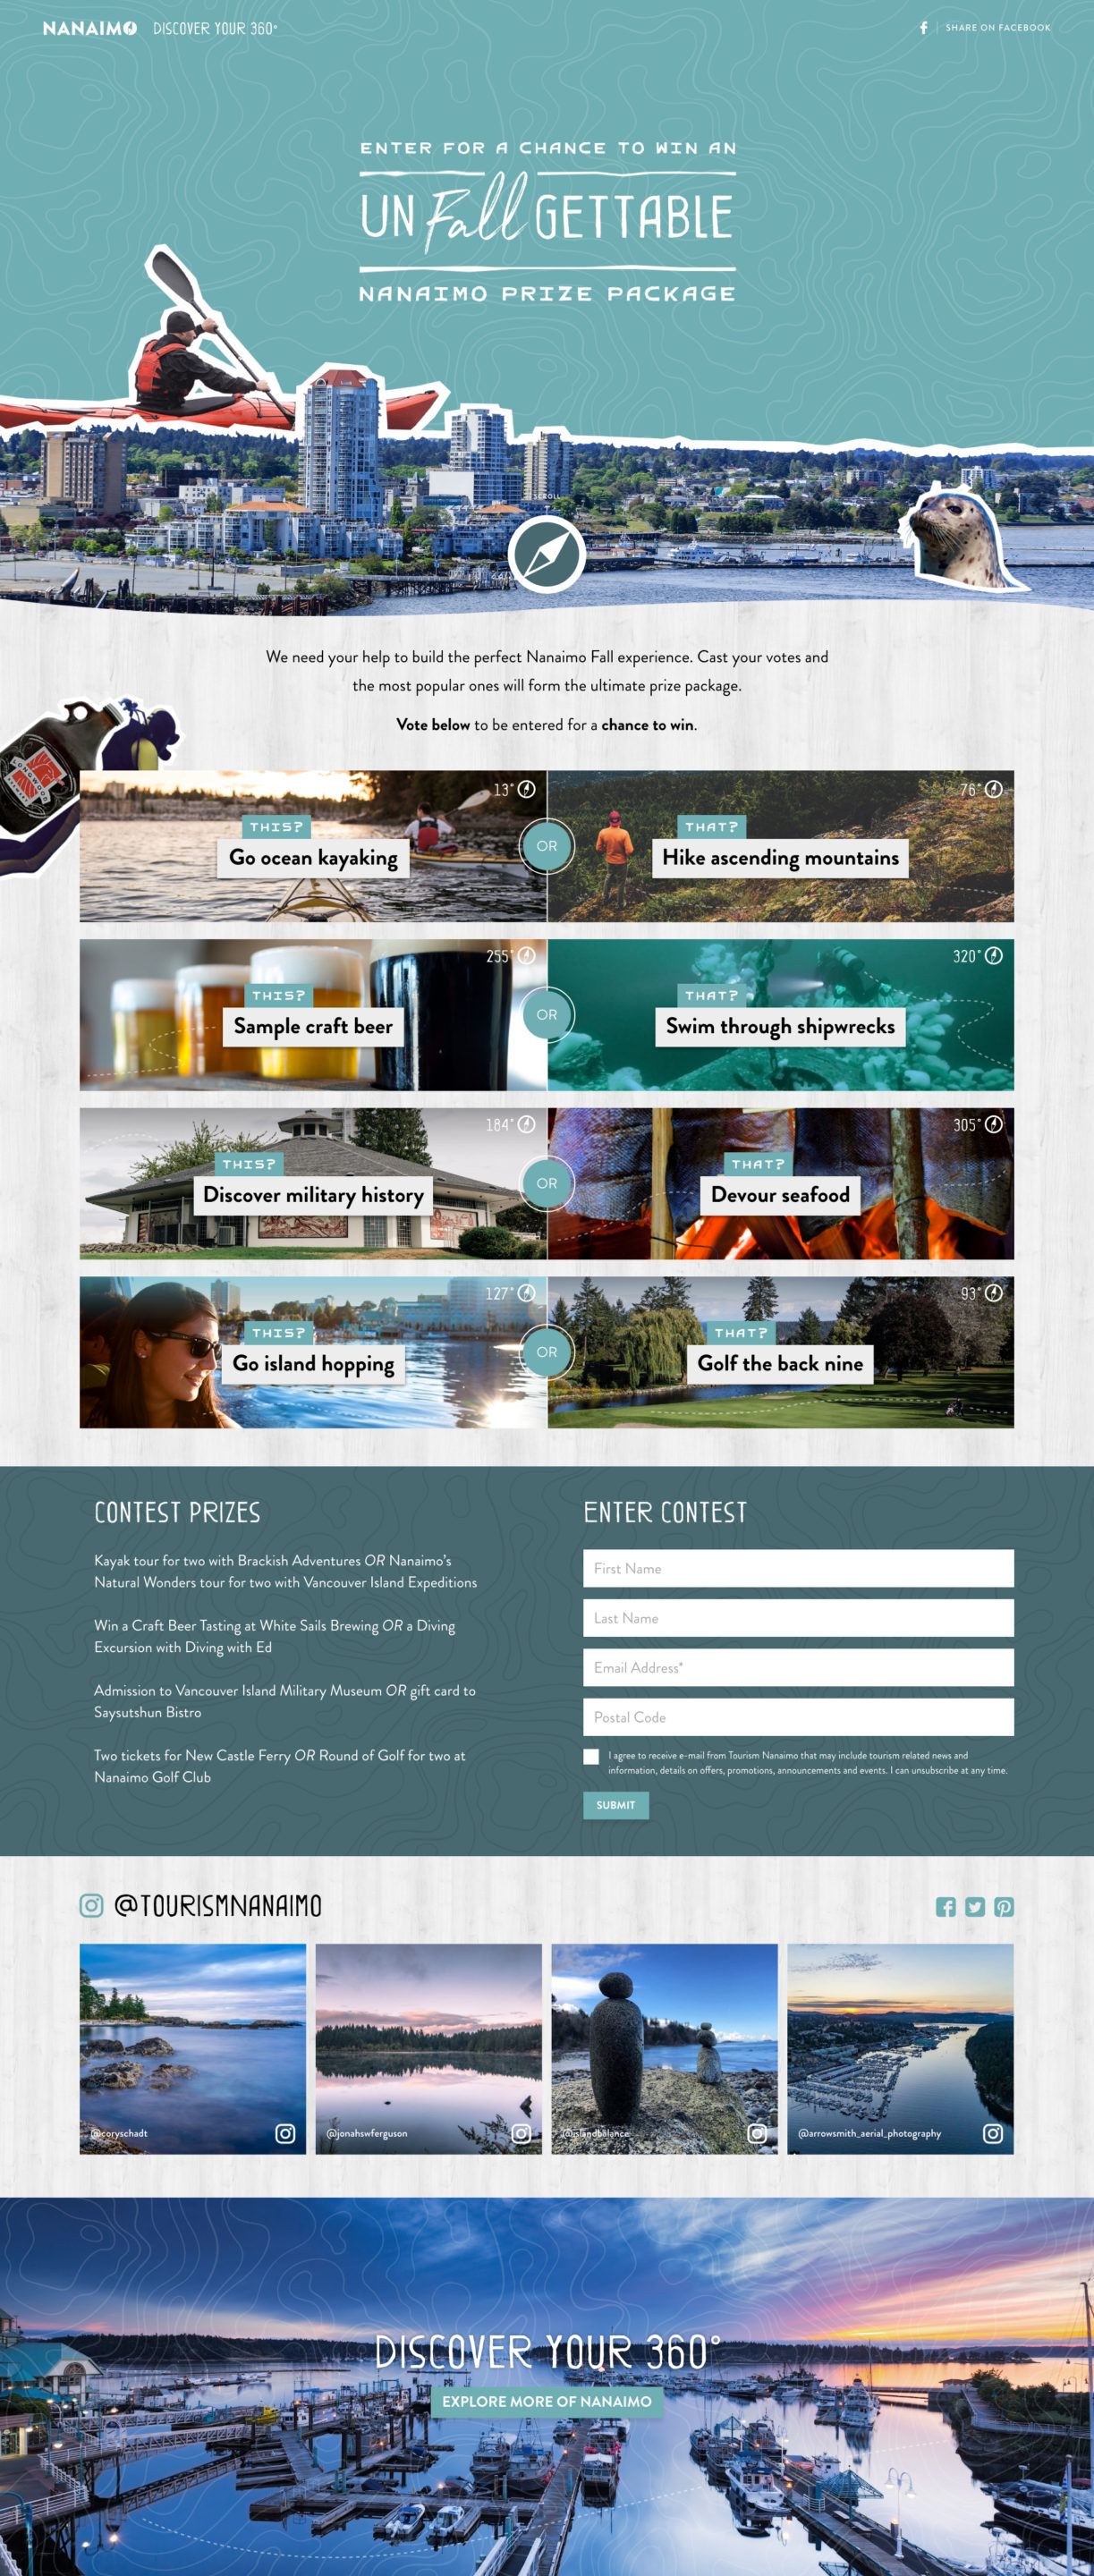 Tourism Nanaimo | This or That campaign landing page